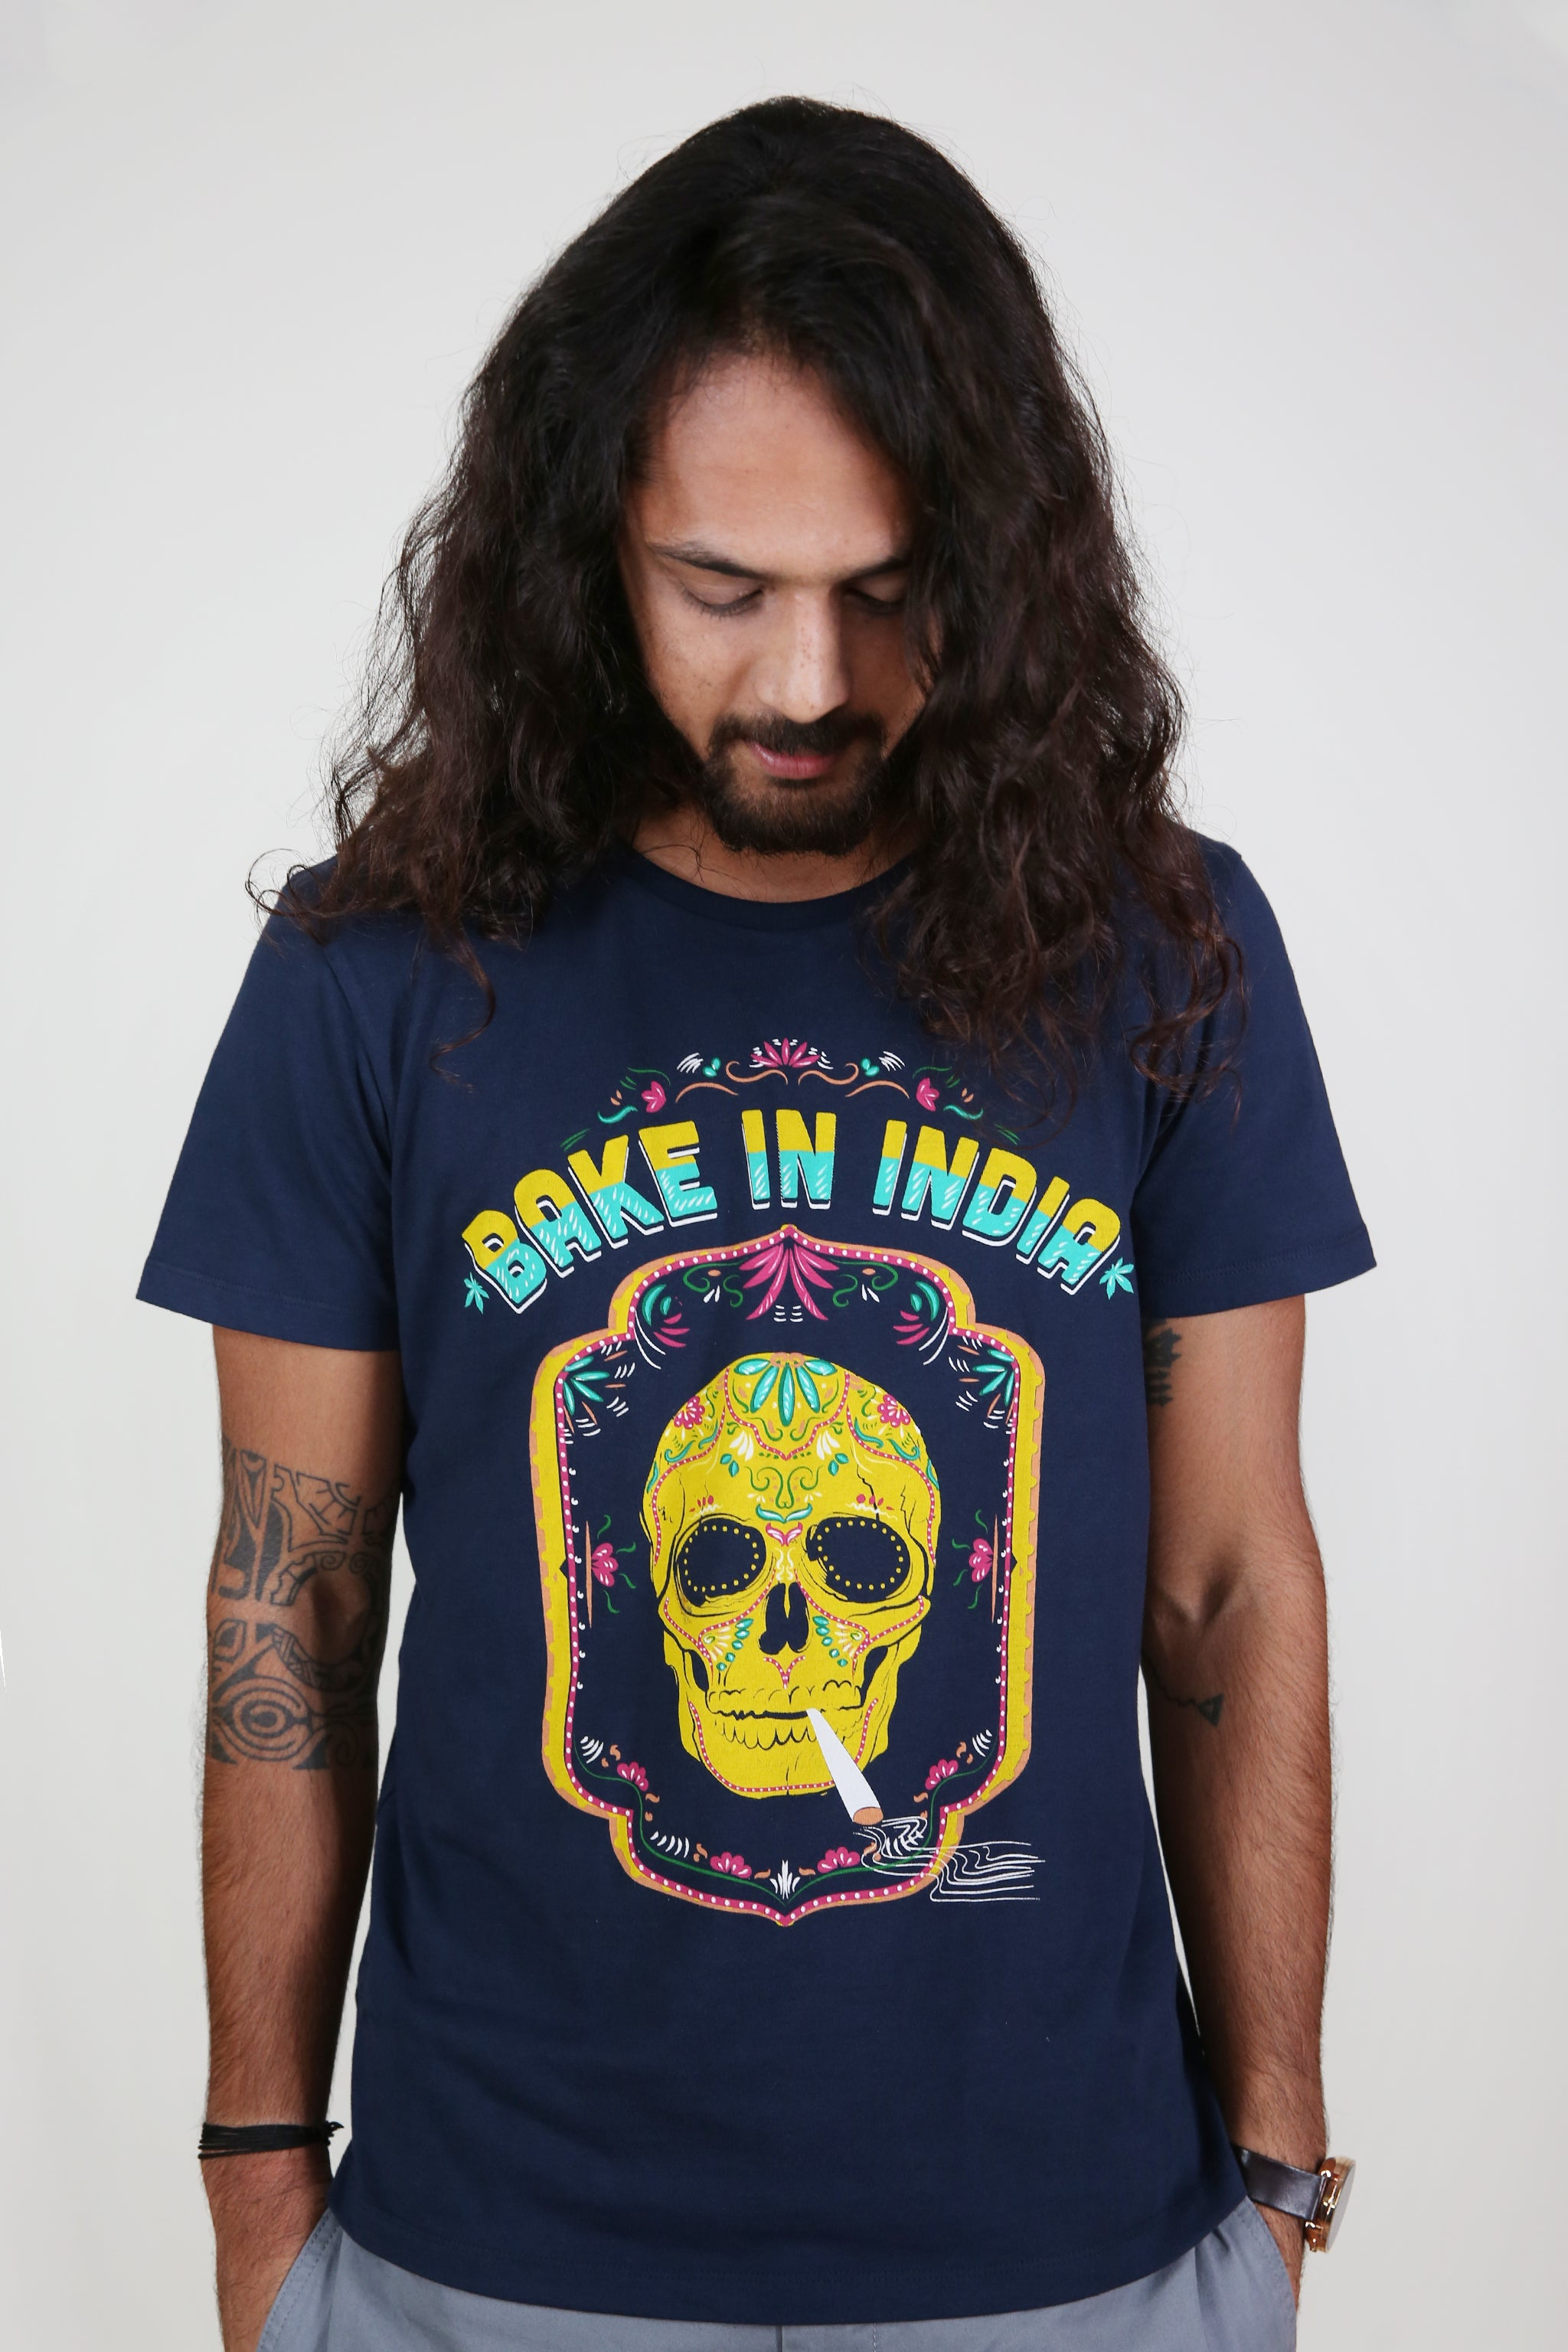 Bake in India Men's T-Shirt